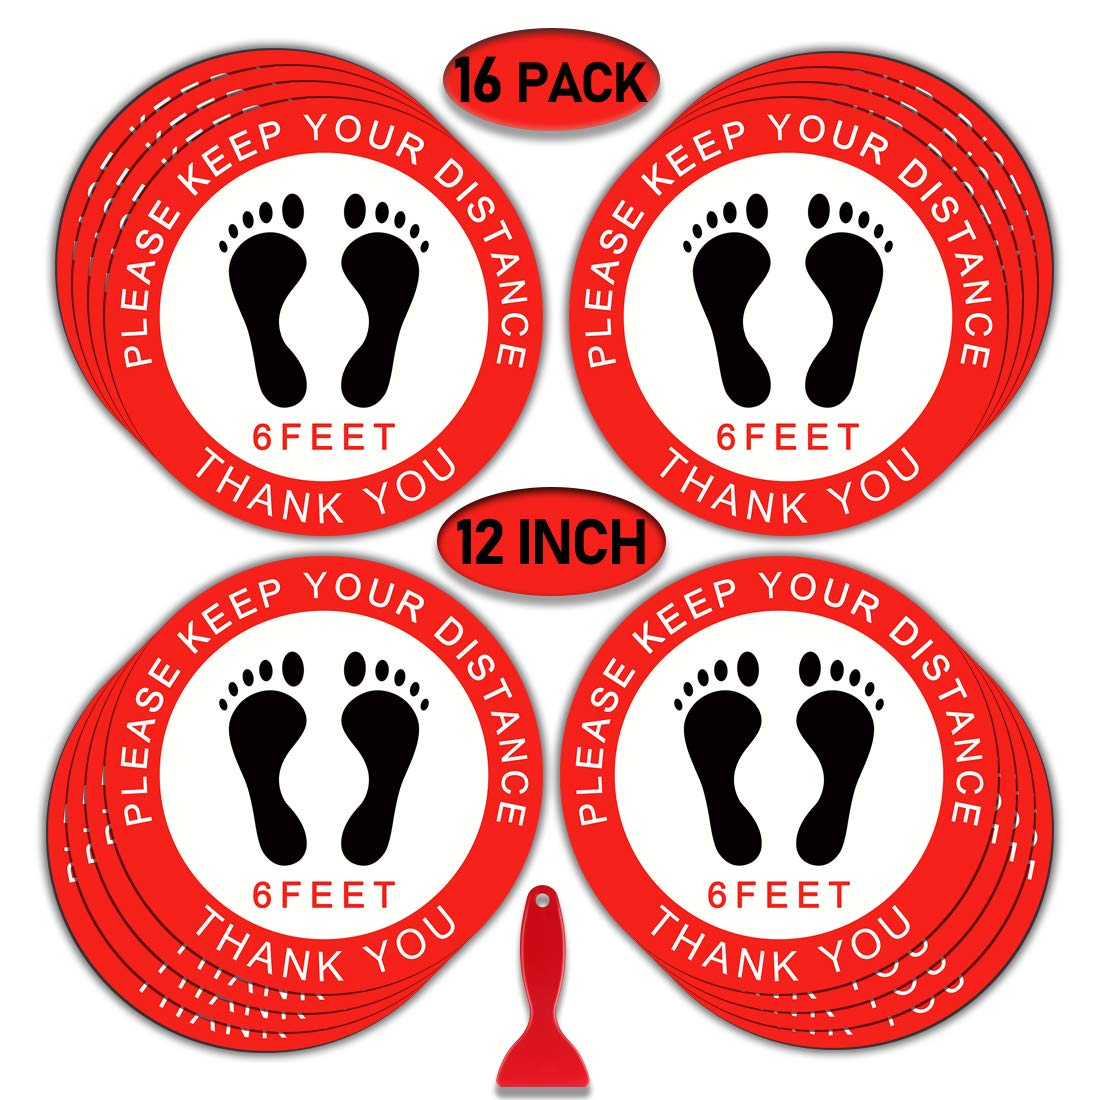 "Social Distance Floor Stickers, 12"" Round Vinyl Removable Decals,16 Pack Safety Floor Sign Marker, Please Keep 6 Feet Apart Decal, Crowd Control for Guidance, Grocery, Pharmacy, Bank, Lab.Red"